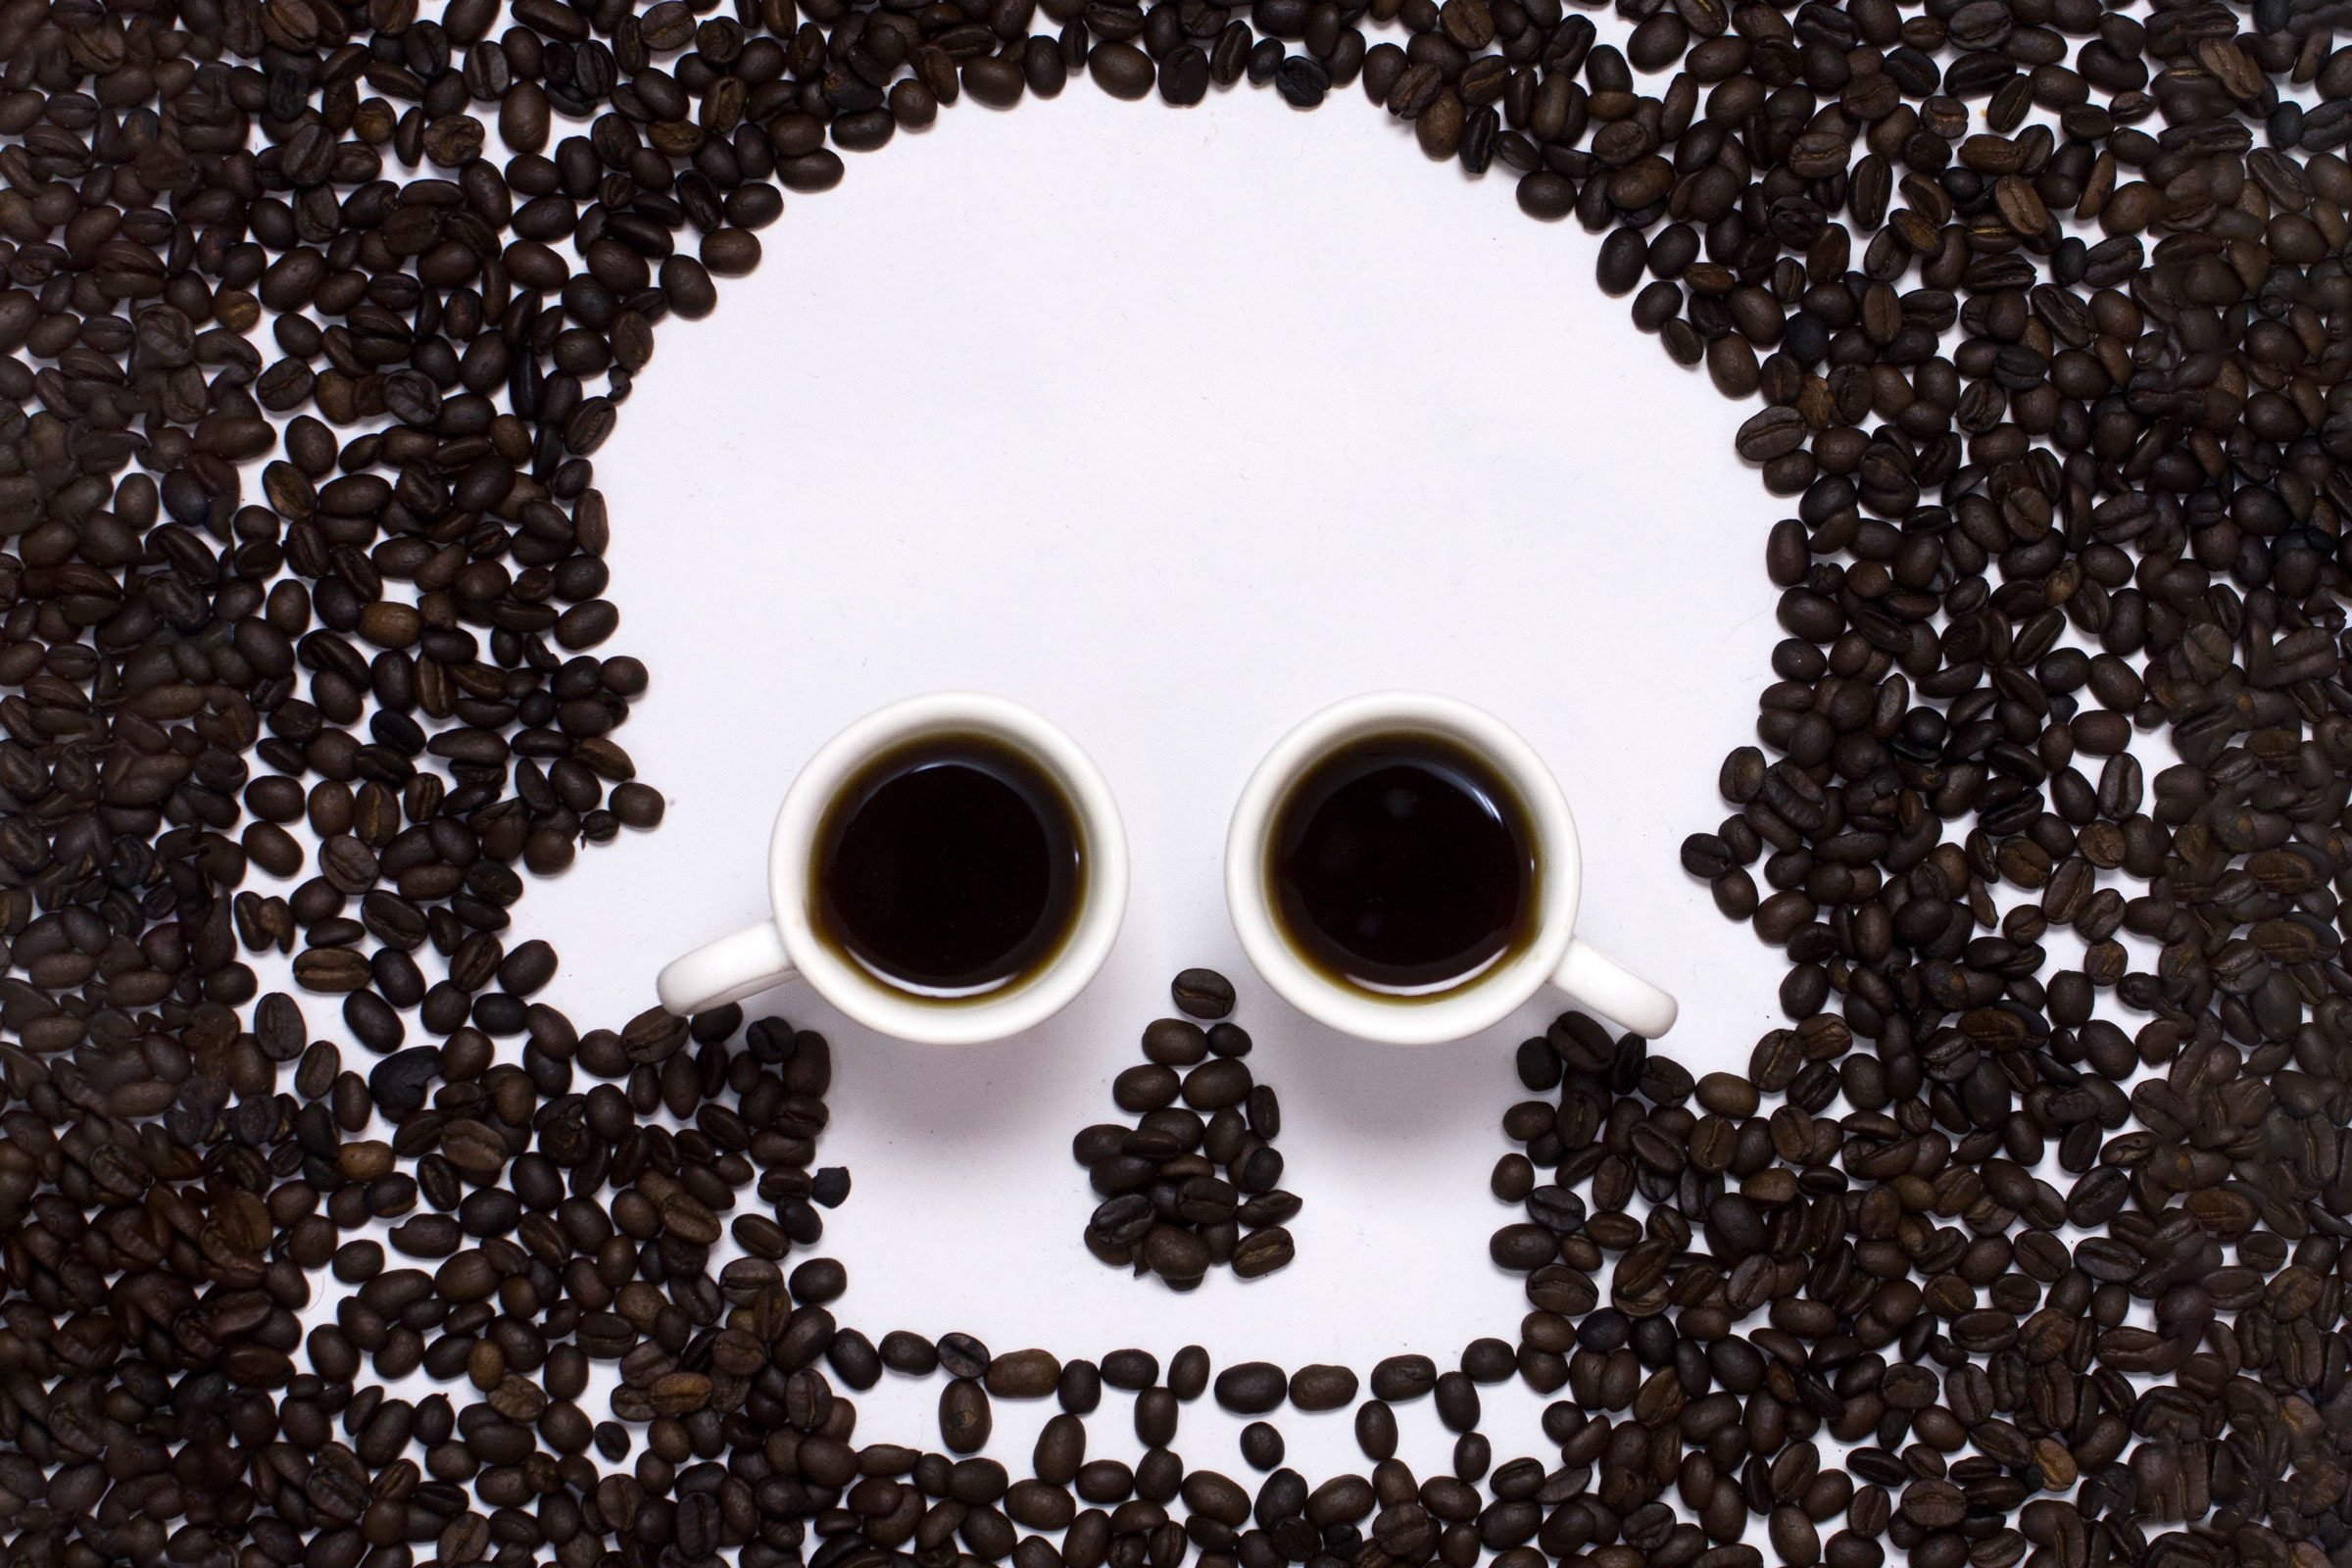 coffee beans shaped into a skull image with two coffee cups for eyes